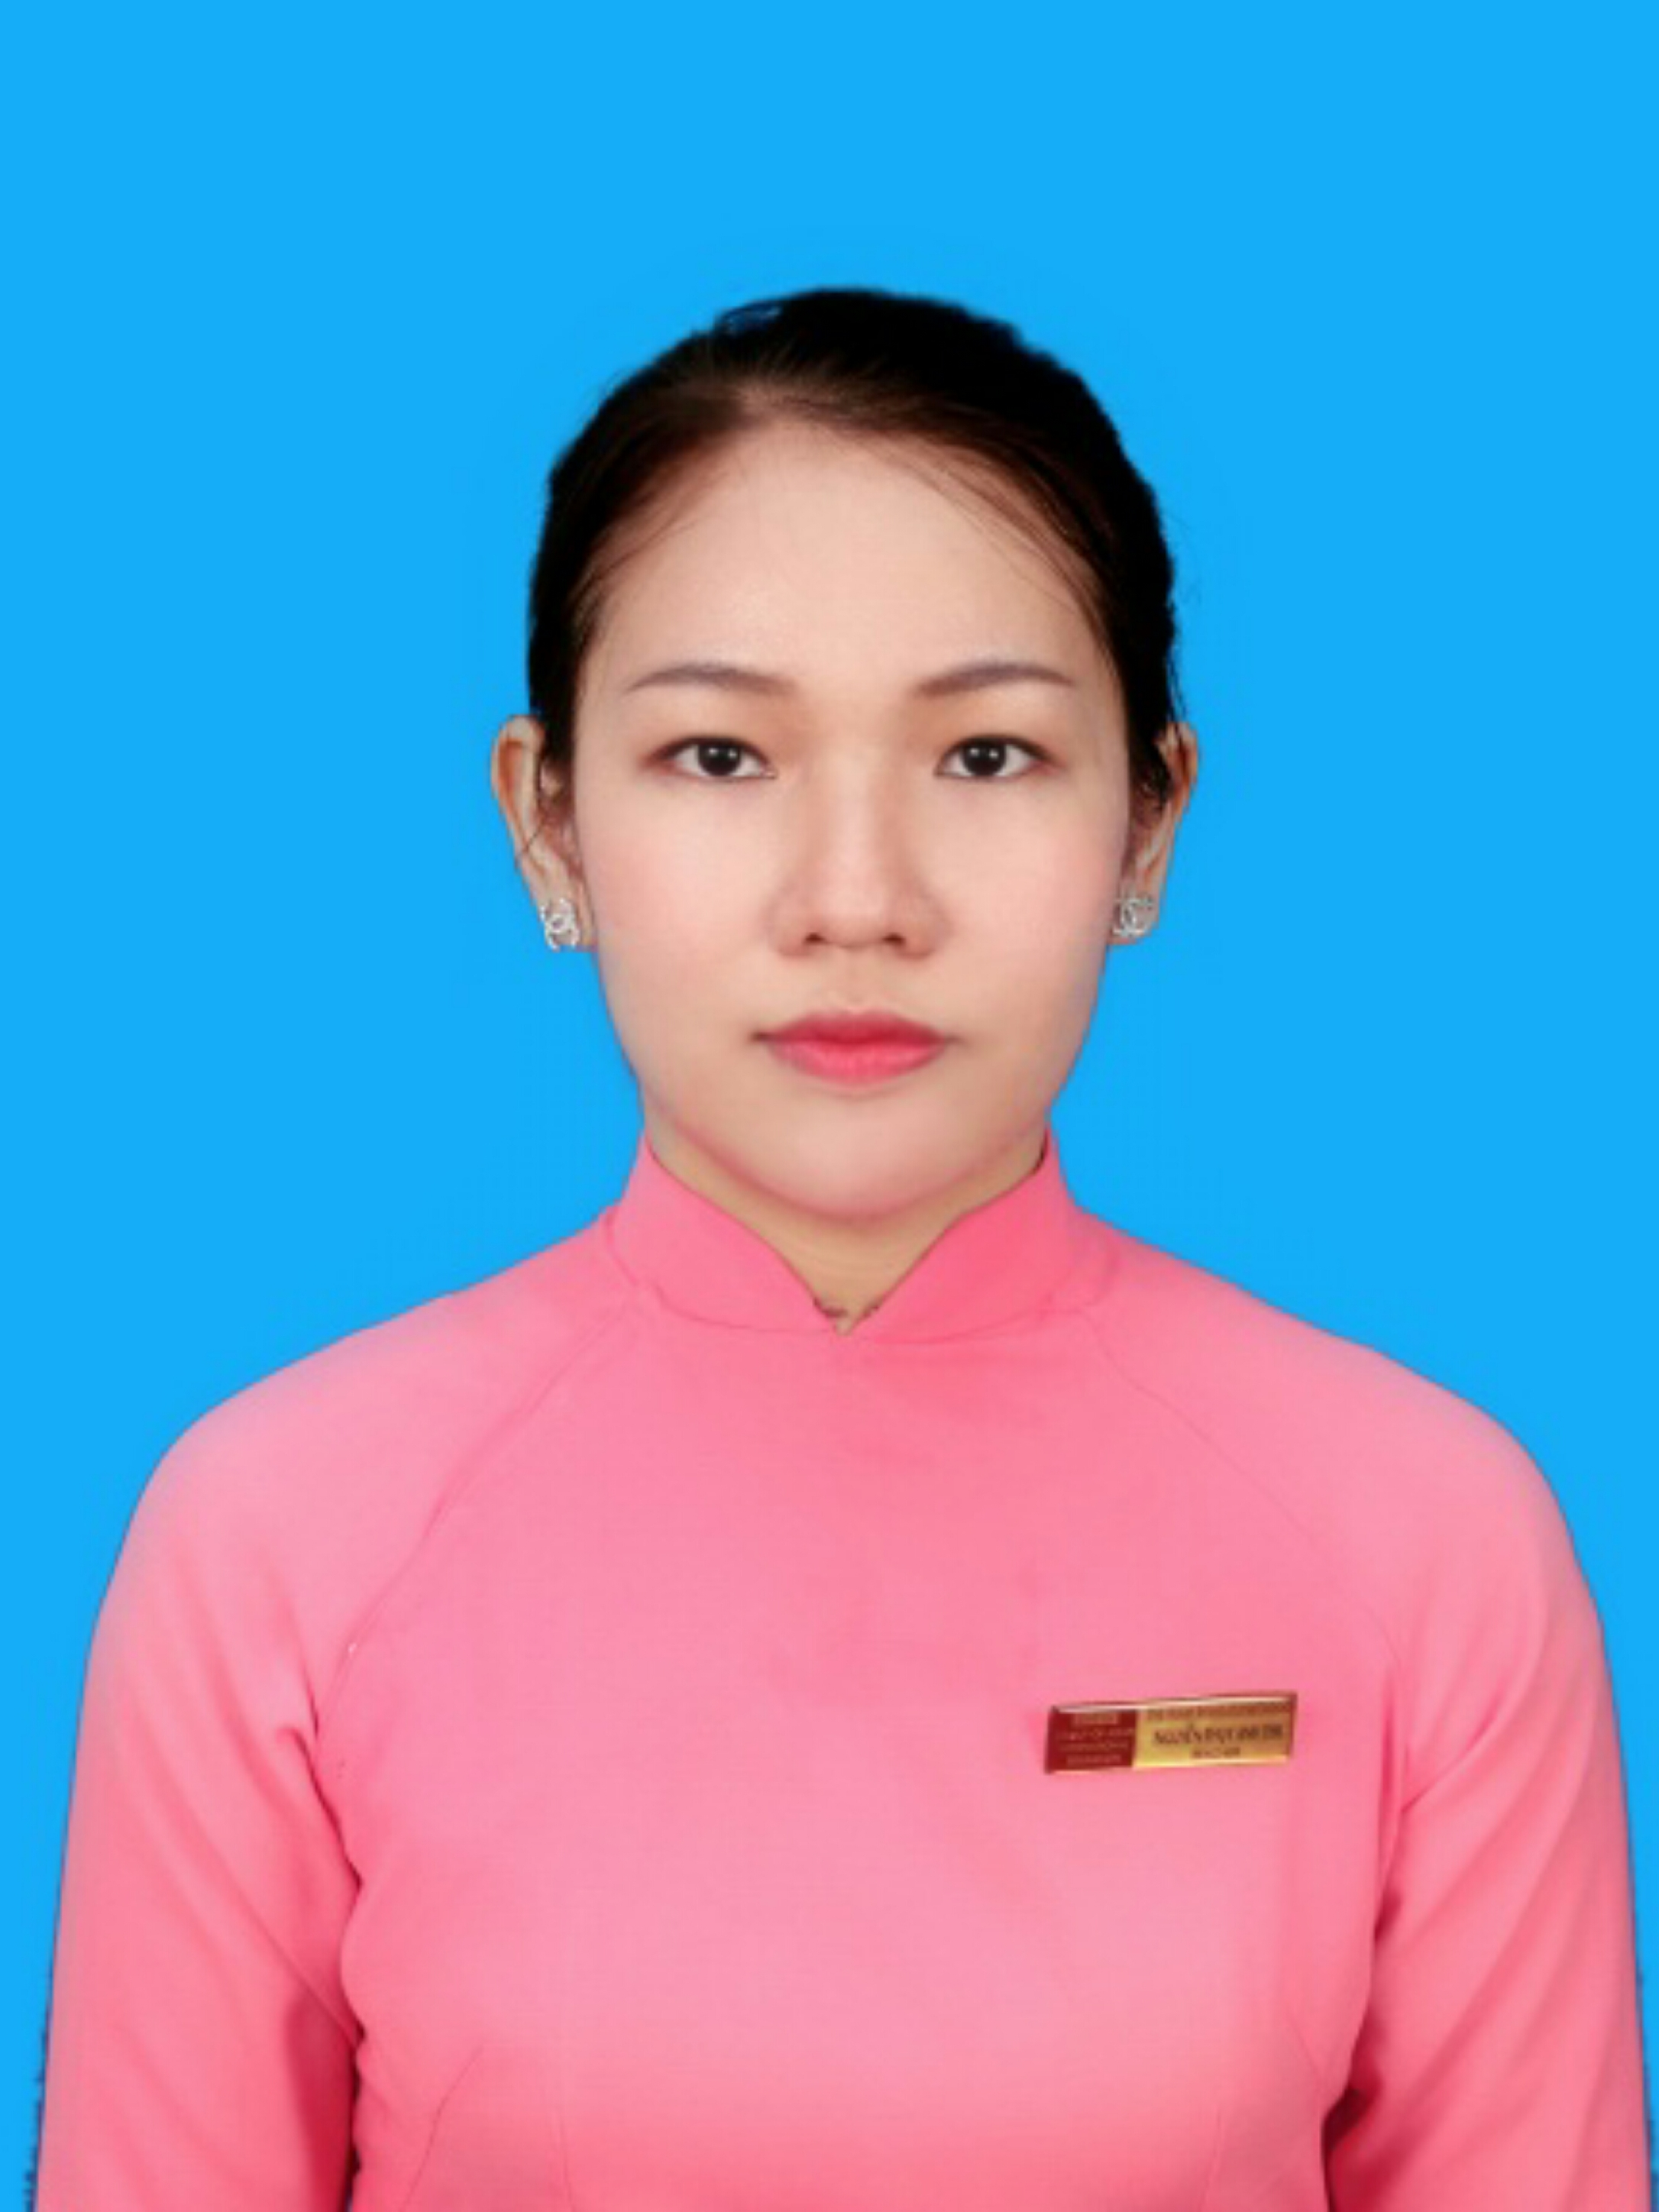 Nguyễn Thụy Anh Thi